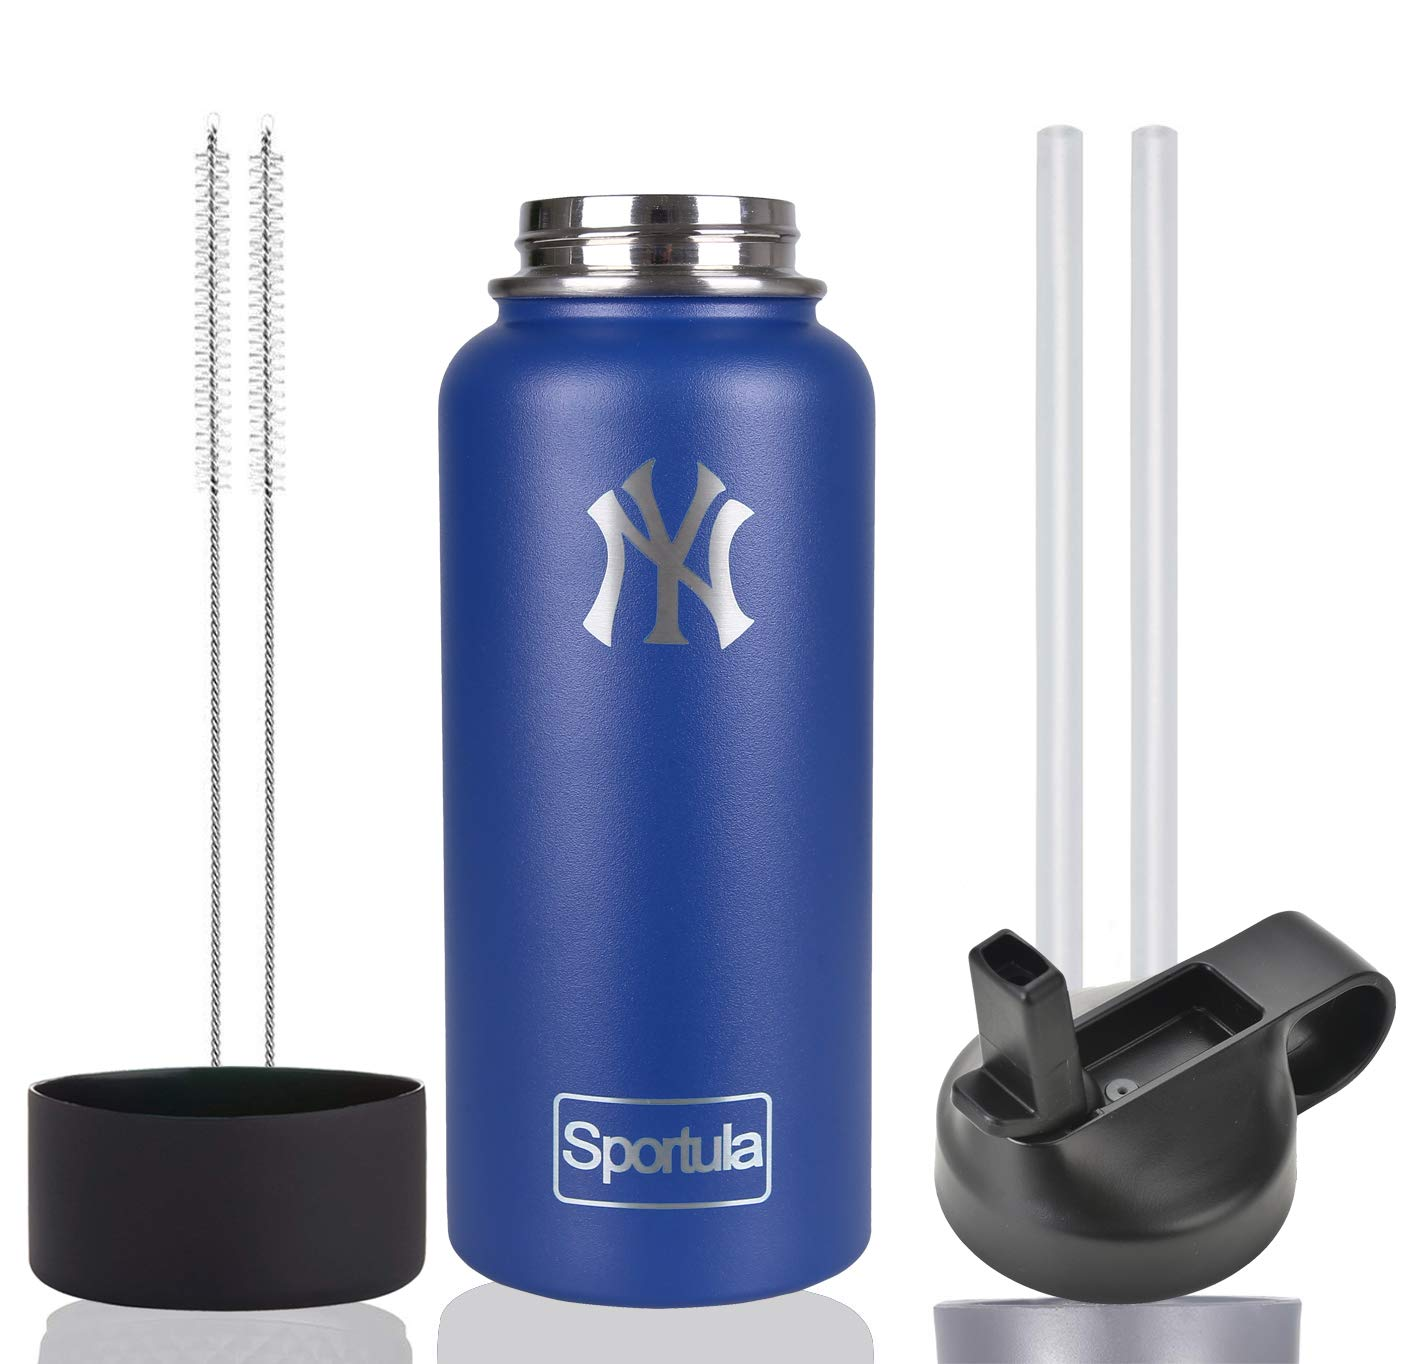 Sportula MLB 40 oz Water Bottle - Stainless Steel & Vacuum Insulated - Wide Mouth with Straw Lid - 2 Straws & 2 Brushes and 1 Protective Boot (Cobalt New York Yankees) by Sportula